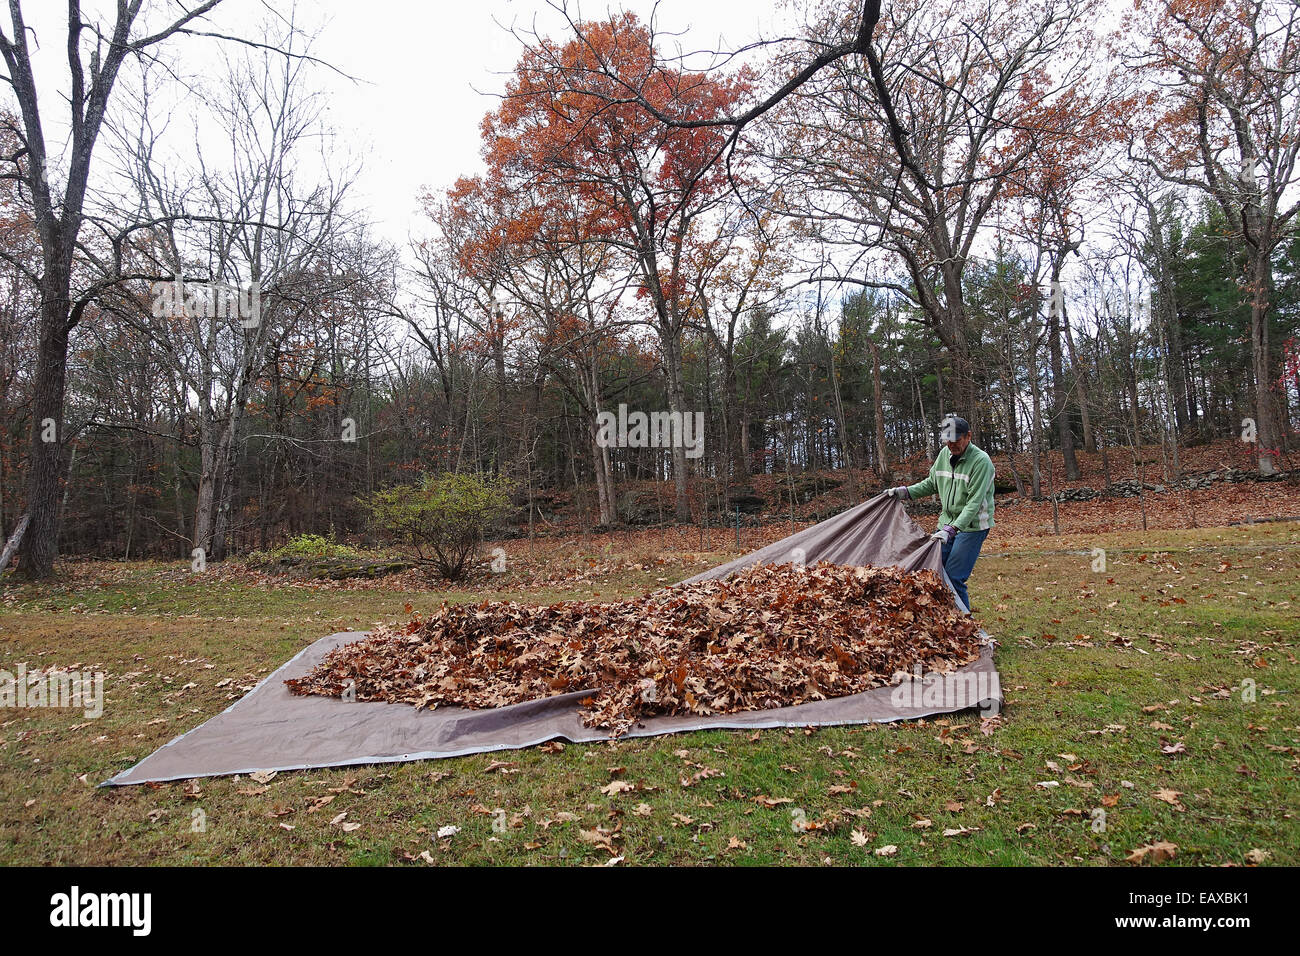 man pulling tarp with leaves - Stock Image